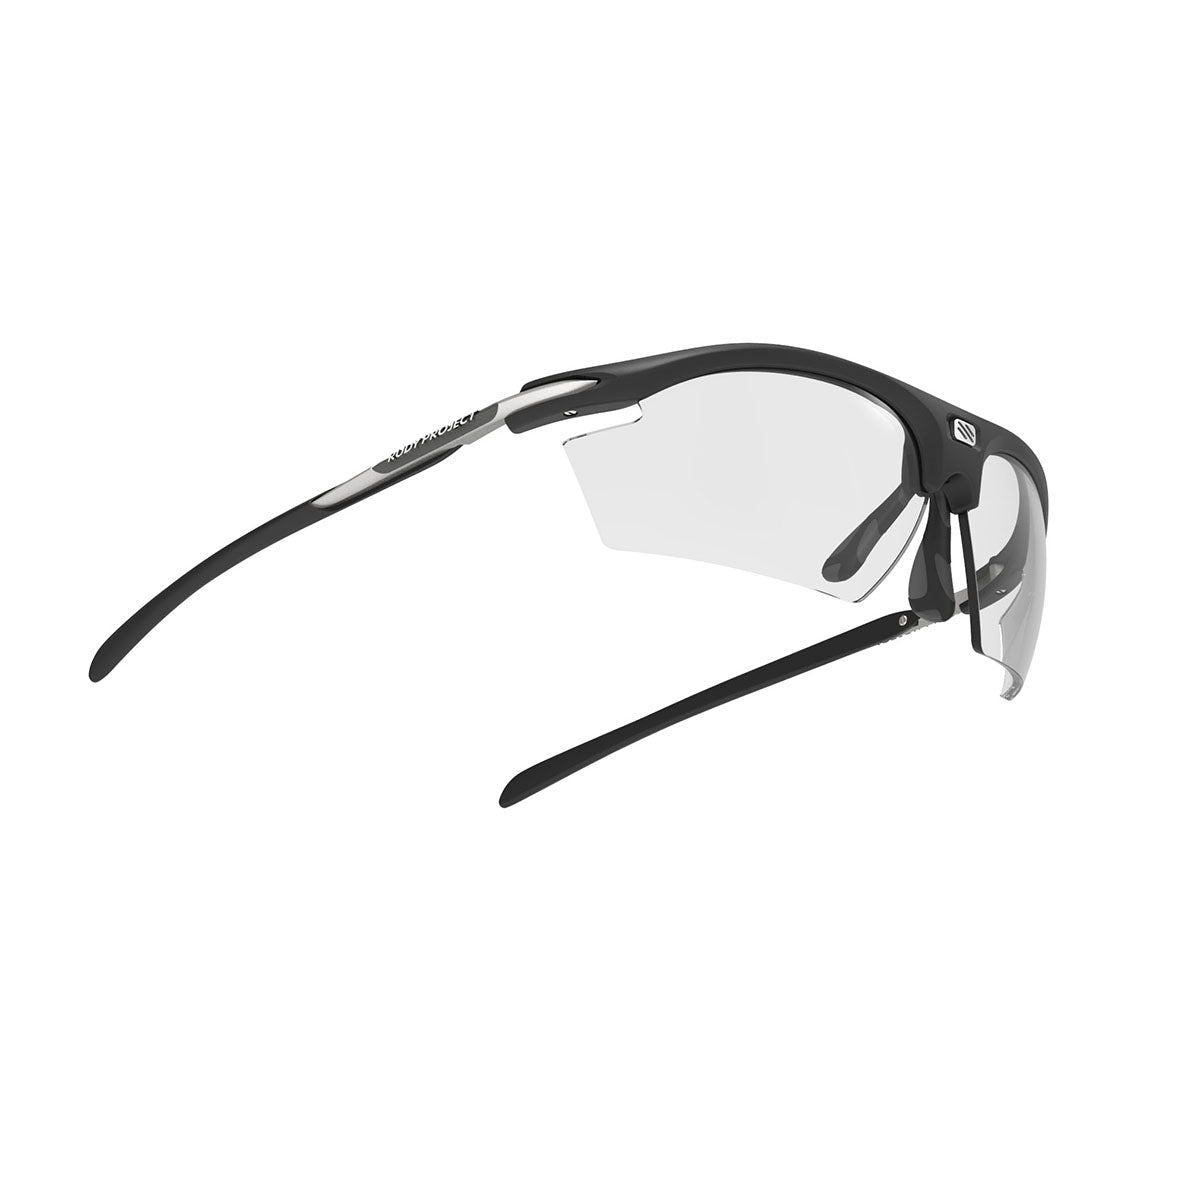 Rudy Project - Rydon - frame color: Matte Black - lens color: ImpactX-2 Photochromic Clear to Black - photo angle: Bottom Front Angle Variant Hover Image